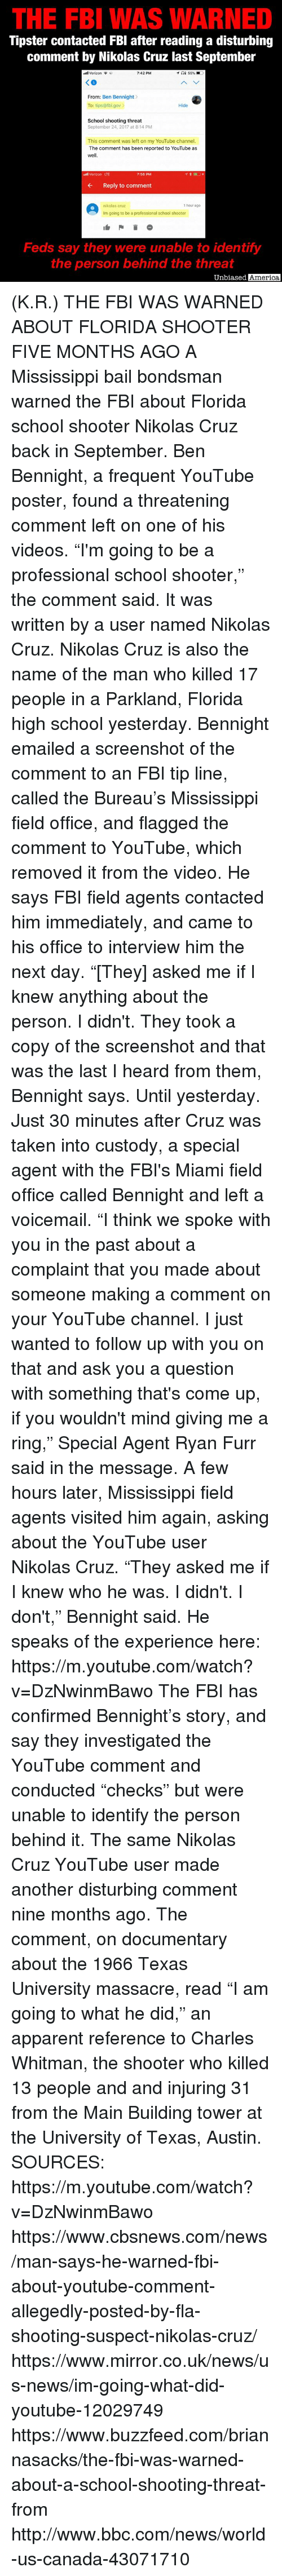 "America, Fbi, and News: THE FBI WAS WARNED  Tipster contacted FBl after reading a disturbing  comment by Nikolas Cruz last September  dll Verizon  7:42 PM  From: Ben Bennight  To: tips@fbi.gov>  Hide  School shooting threat  September 24, 2017 at 8:14 PM  This comment was left on my YouTube channel.  The comment has been reported to YouTube as  well.  l Verizon LTE  7:56 PM  Reply to comment  nikolas cruz  1 hour ago  Im going to be a professional school shooter  Feds say they were unable to identify  the person behind the threat  Unbiased  America (K.R.) THE FBI WAS WARNED ABOUT FLORIDA SHOOTER FIVE MONTHS AGO  A Mississippi bail bondsman warned the FBI about Florida school shooter Nikolas Cruz back in September.  Ben Bennight, a frequent YouTube poster, found a threatening comment left on one of his videos. ""I'm going to be a professional school shooter,"" the comment said.  It was written by a user named Nikolas Cruz.  Nikolas Cruz is also the name of the man who killed 17 people in a Parkland, Florida high school yesterday.  Bennight emailed a screenshot of the comment to an FBI tip line, called the Bureau's Mississippi field office, and flagged the comment to YouTube, which removed it from the video.  He says FBI field agents contacted him immediately, and came to his office to interview him the next day.  ""[They] asked me if I knew anything about the person.  I didn't. They took a copy of the screenshot and that was the last I heard from them, Bennight says.  Until yesterday.  Just 30 minutes after Cruz was taken into custody, a special agent with the FBI's Miami field office called Bennight and left a voicemail.  ""I think we spoke with you in the past about a complaint that you made about someone making a comment on your YouTube channel.  I just wanted to follow up with you on that and ask you a question with something that's come up, if you wouldn't mind giving me a ring,"" Special Agent Ryan Furr said in the message.  A few hours later, Mississippi field agents visited him again, asking about the YouTube user Nikolas Cruz.  ""They asked me if I knew who he was. I didn't. I don't,"" Bennight said.  He speaks of the experience here: https://m.youtube.com/watch?v=DzNwinmBawo  The FBI has confirmed Bennight's story, and say they investigated the YouTube comment and conducted ""checks"" but were unable to identify the person behind it.  The same Nikolas Cruz YouTube user made another disturbing comment nine months ago.  The comment, on documentary about the 1966 Texas University massacre, read ""I am going to what he did,"" an apparent reference to Charles Whitman, the shooter who killed 13 people and and injuring 31 from the Main Building tower at the University of Texas, Austin.  SOURCES: https://m.youtube.com/watch?v=DzNwinmBawo https://www.cbsnews.com/news/man-says-he-warned-fbi-about-youtube-comment-allegedly-posted-by-fla-shooting-suspect-nikolas-cruz/ https://www.mirror.co.uk/news/us-news/im-going-what-did-youtube-12029749 https://www.buzzfeed.com/briannasacks/the-fbi-was-warned-about-a-school-shooting-threat-from http://www.bbc.com/news/world-us-canada-43071710"